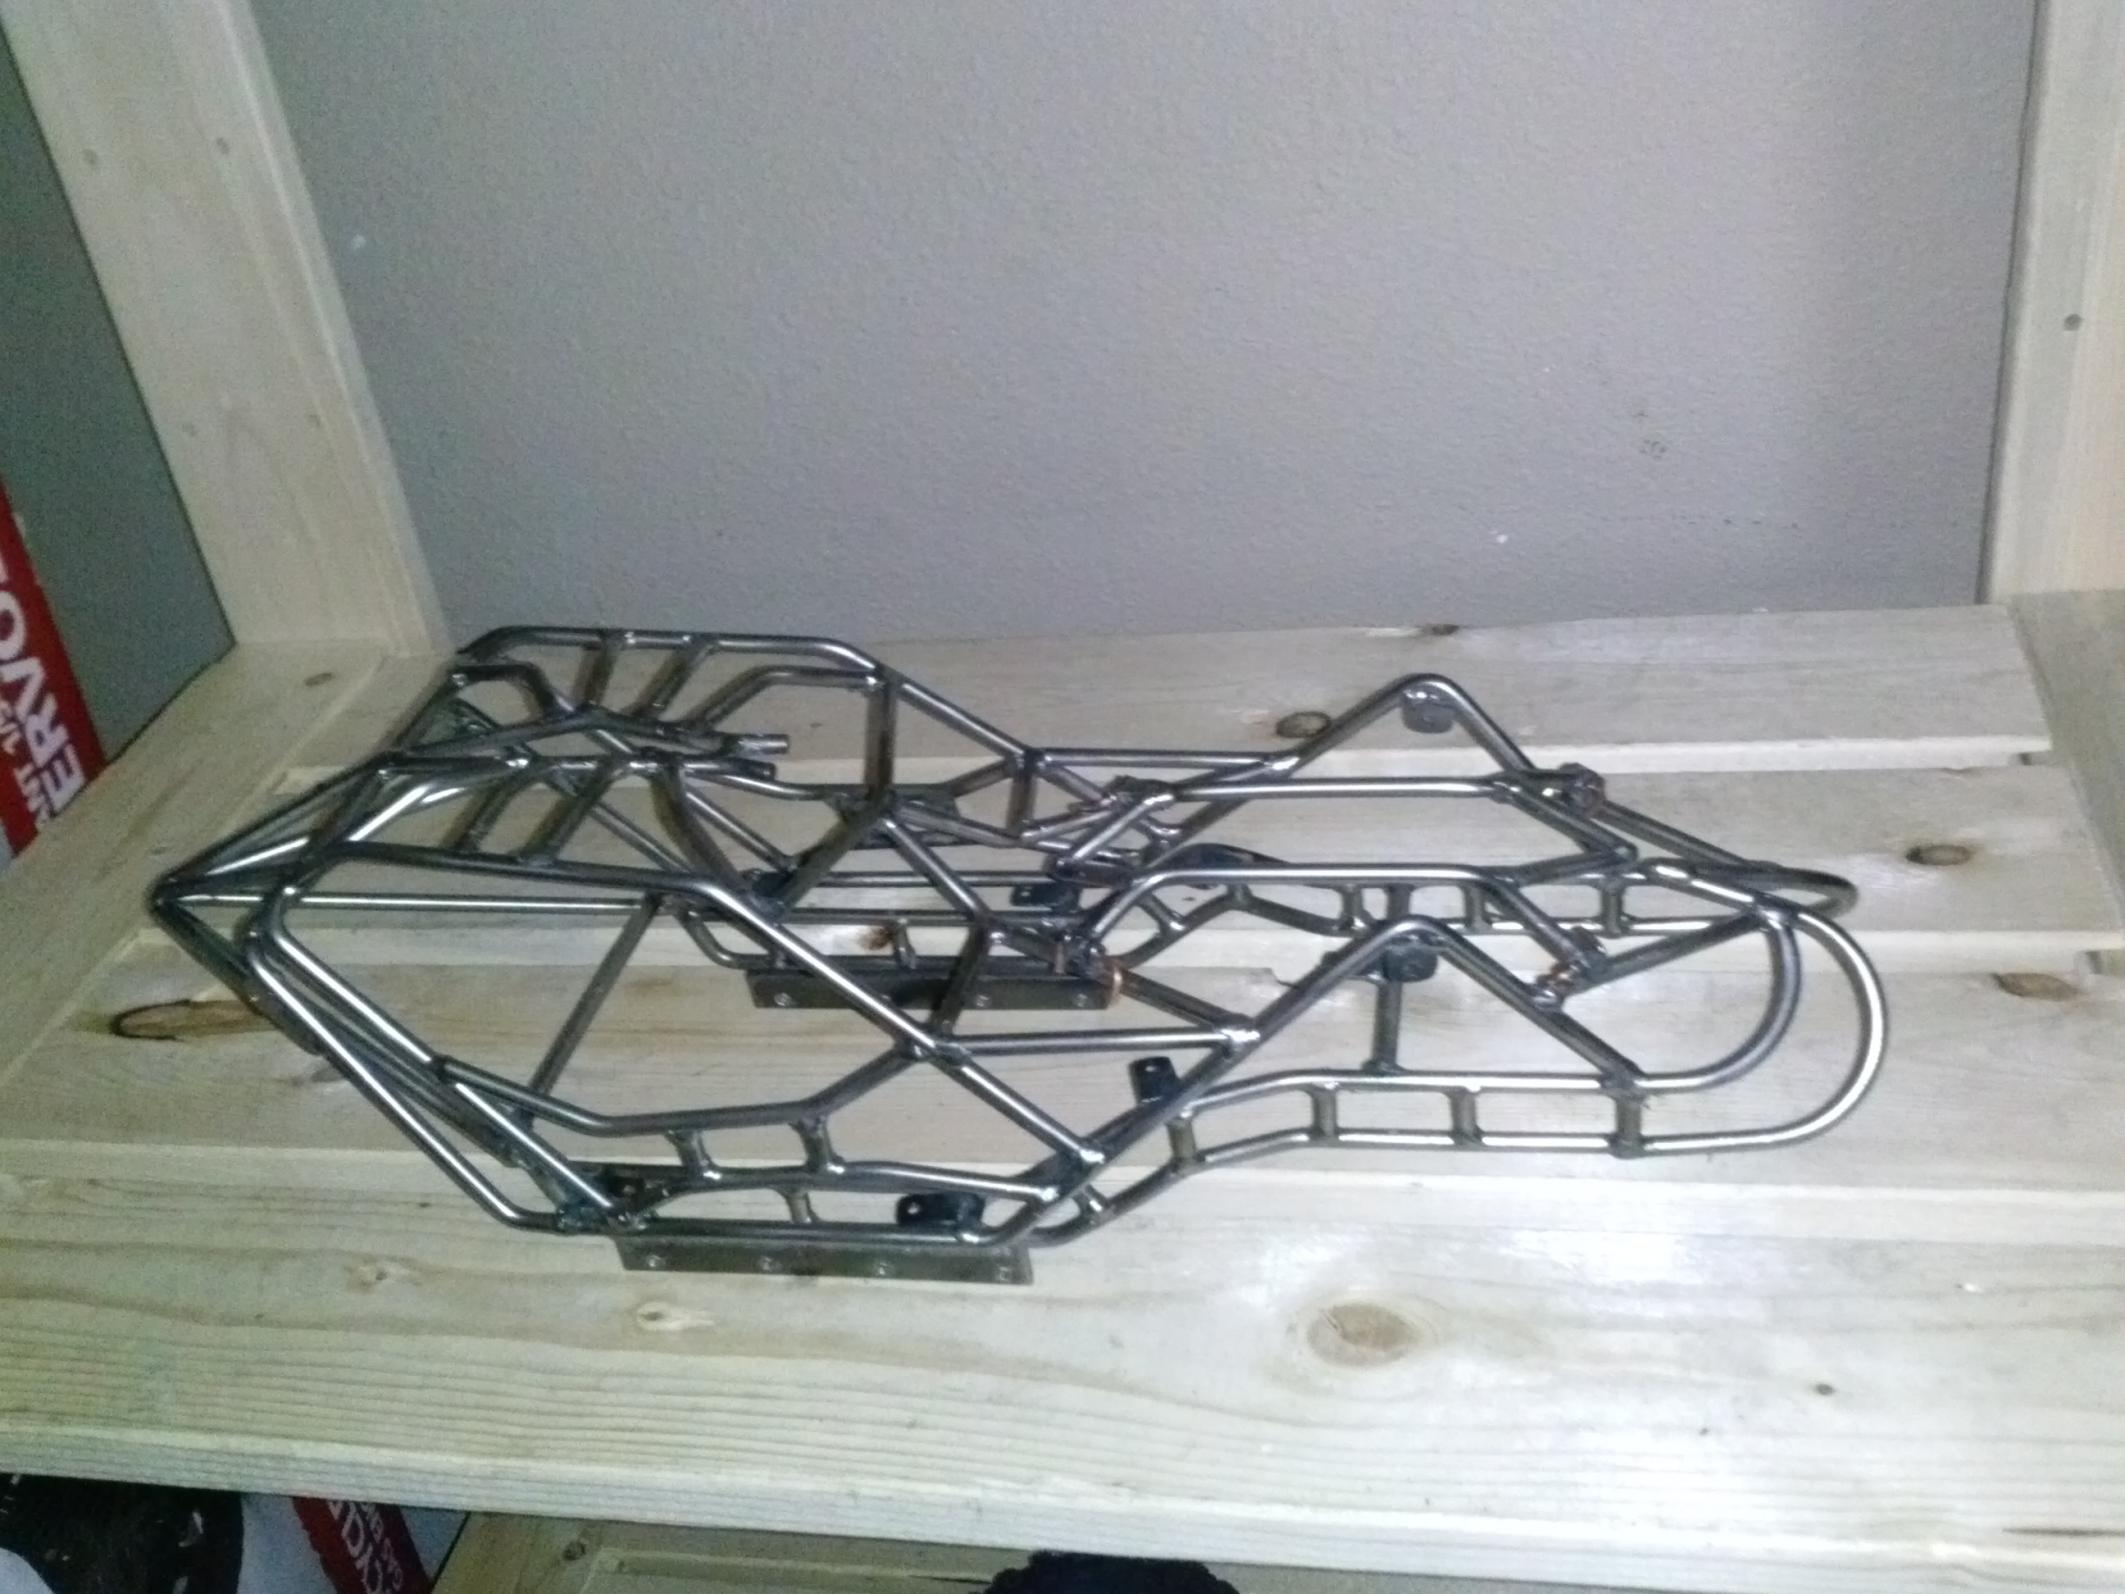 Rock Bouncer For Sale >> Custom Spider southern rock bouncer chassis (wraith skid) - R/C Tech Forums